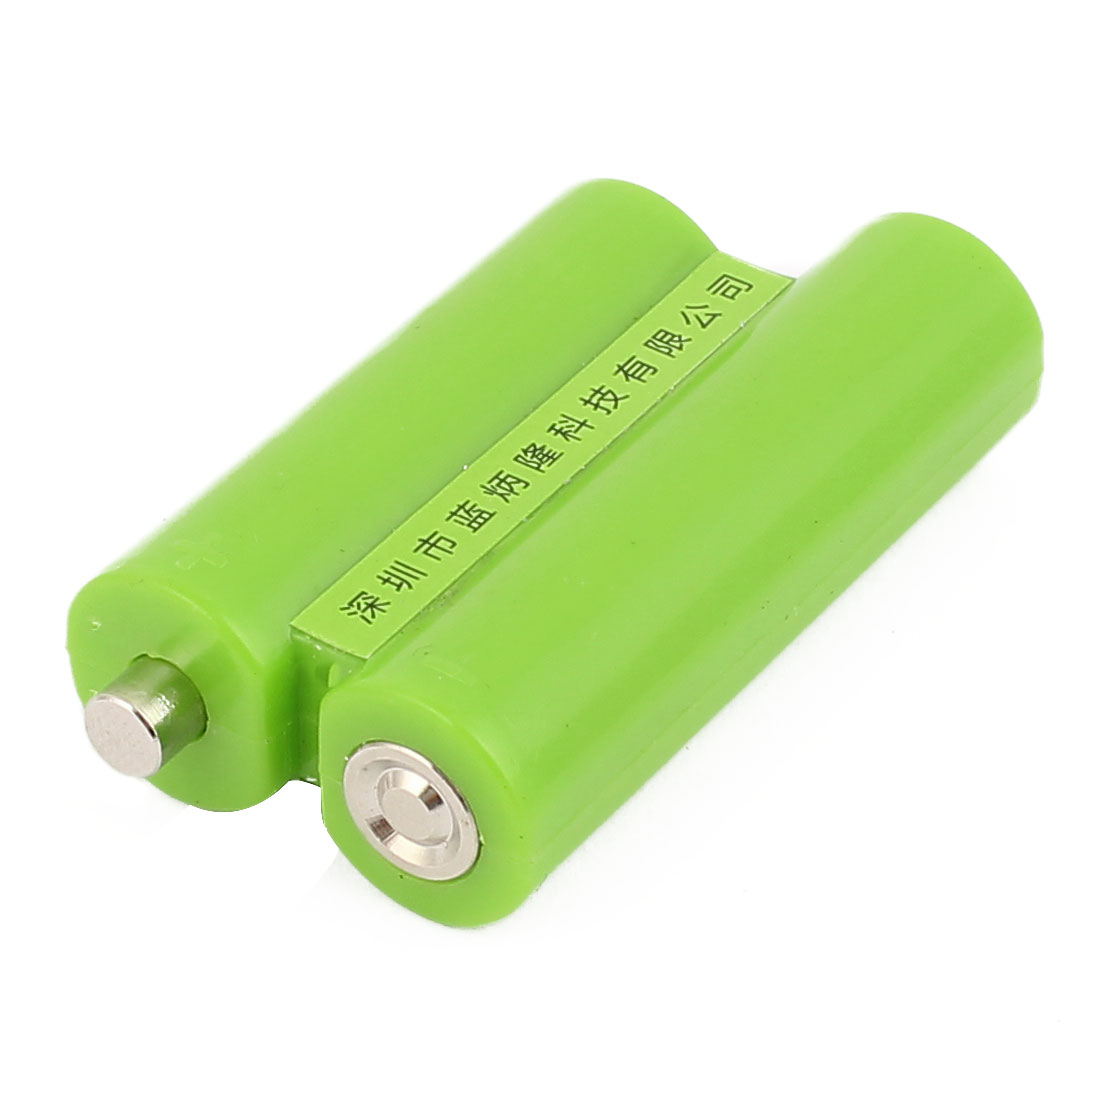 3.0V 1.48wh Micro-USB Rechargeable 2 Connecting AA Li-Poly Long-Lasting Battery w Charge Wire